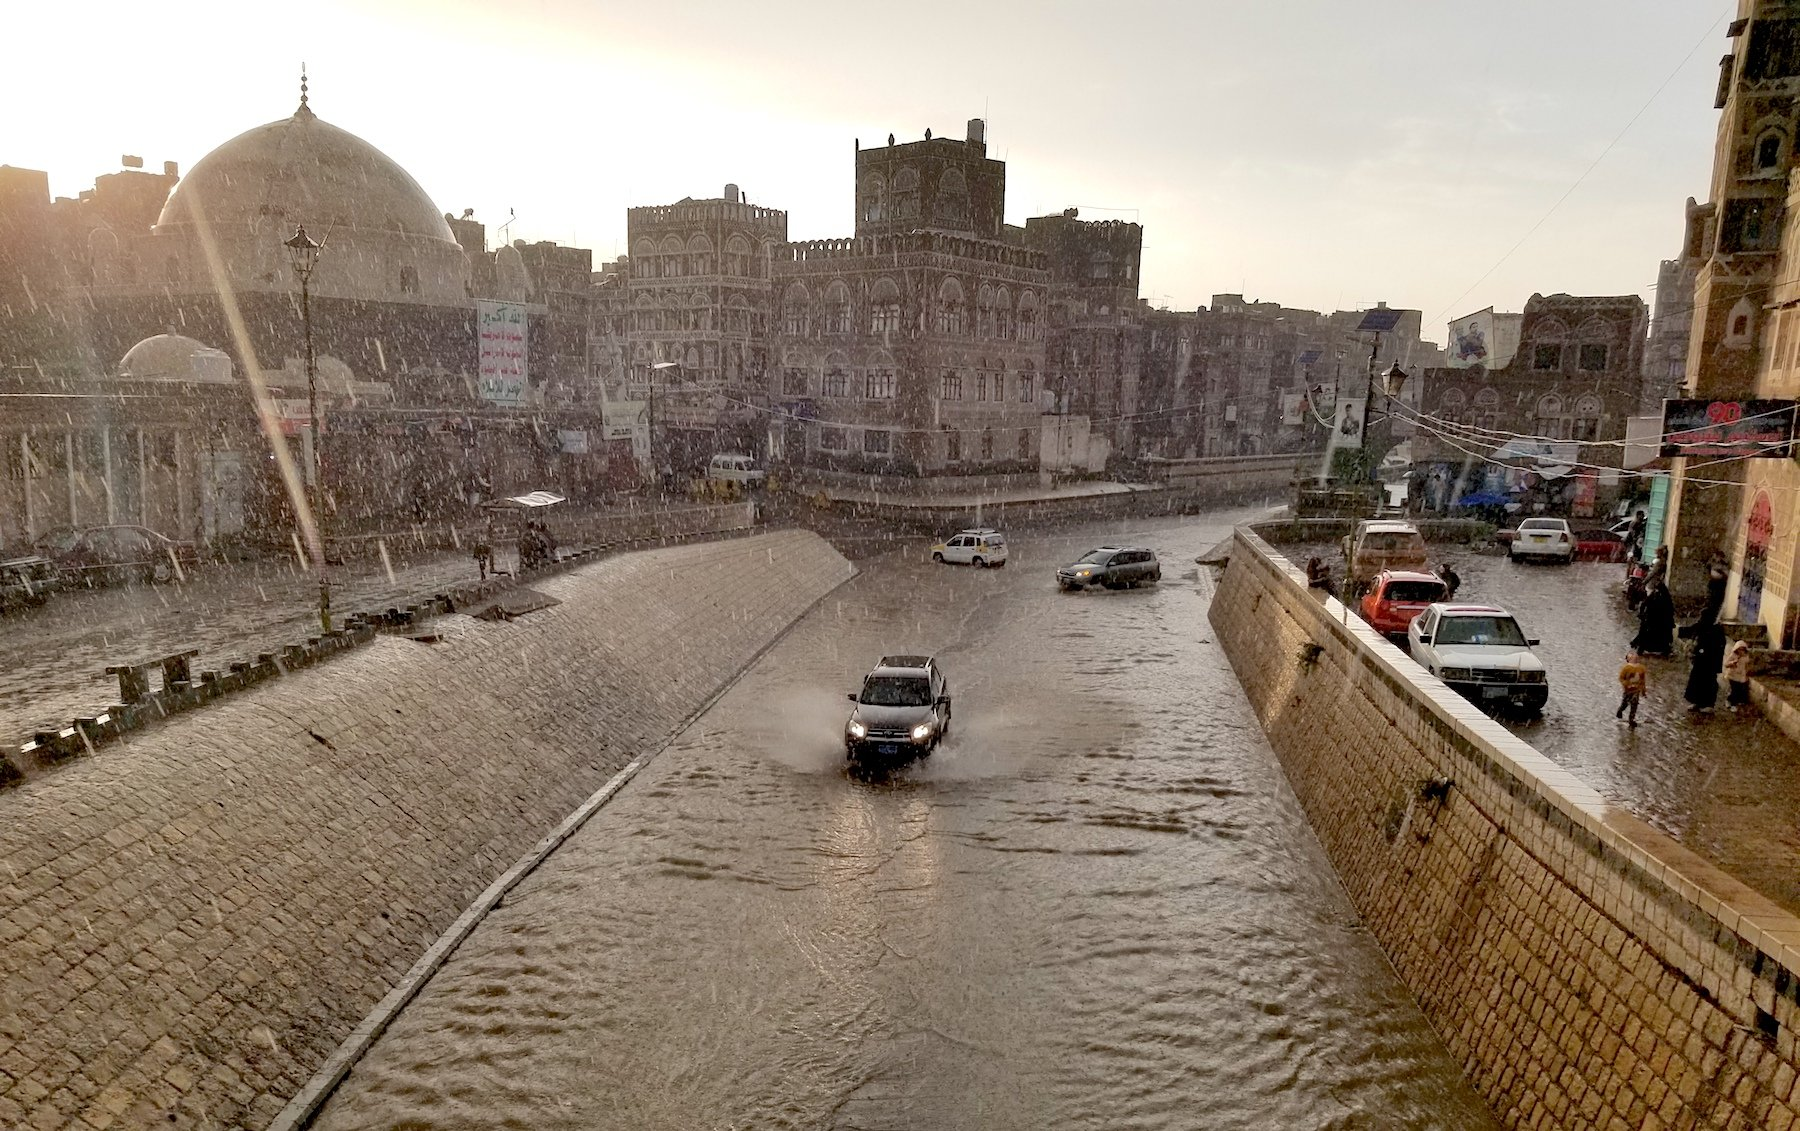 Cars driving through flooded road in Old City of Sanaa, Yemen